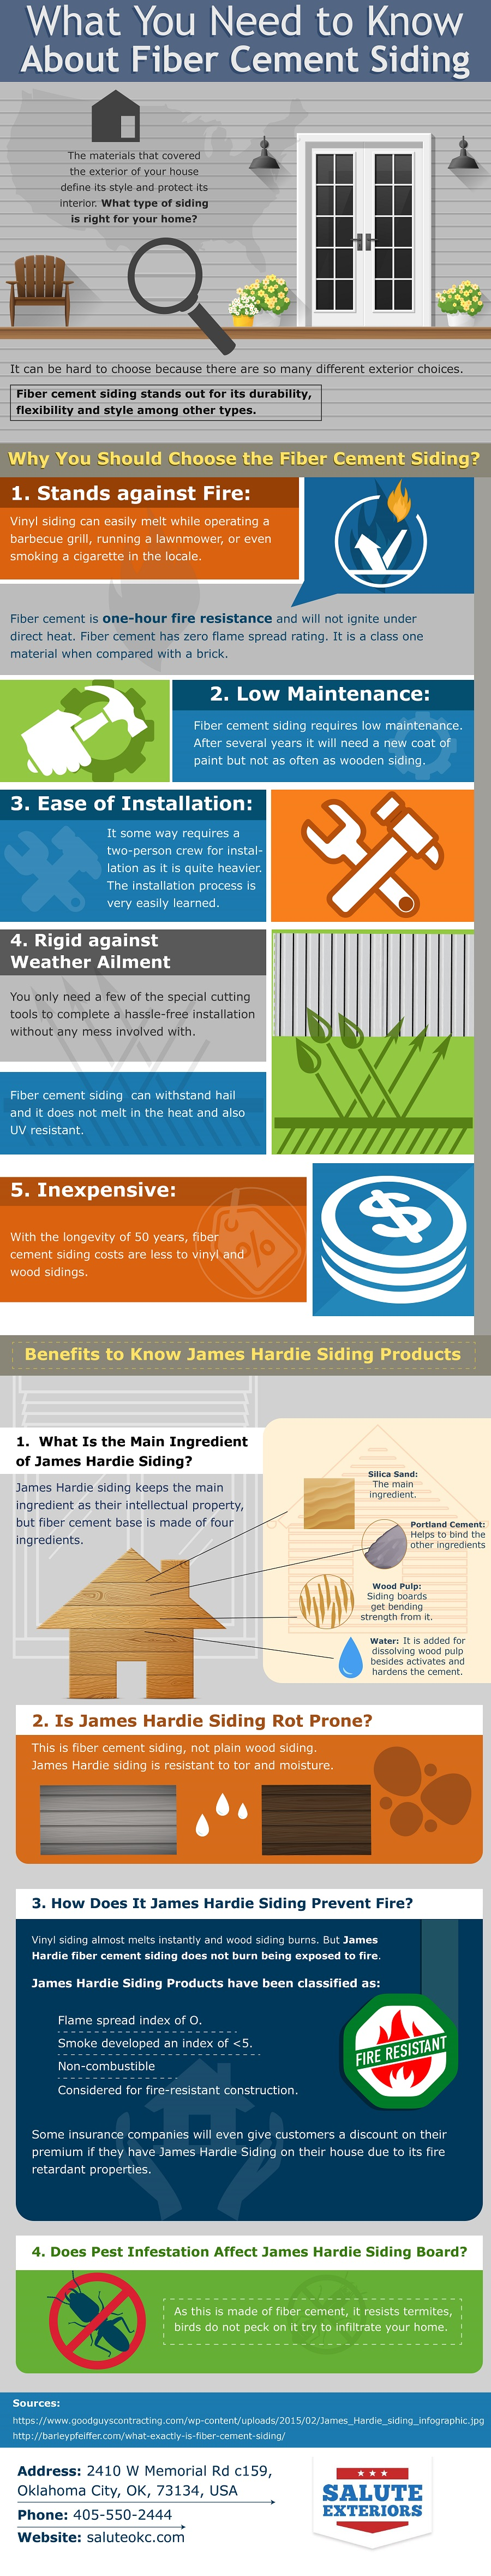 Know about fiber cement siding.jpg